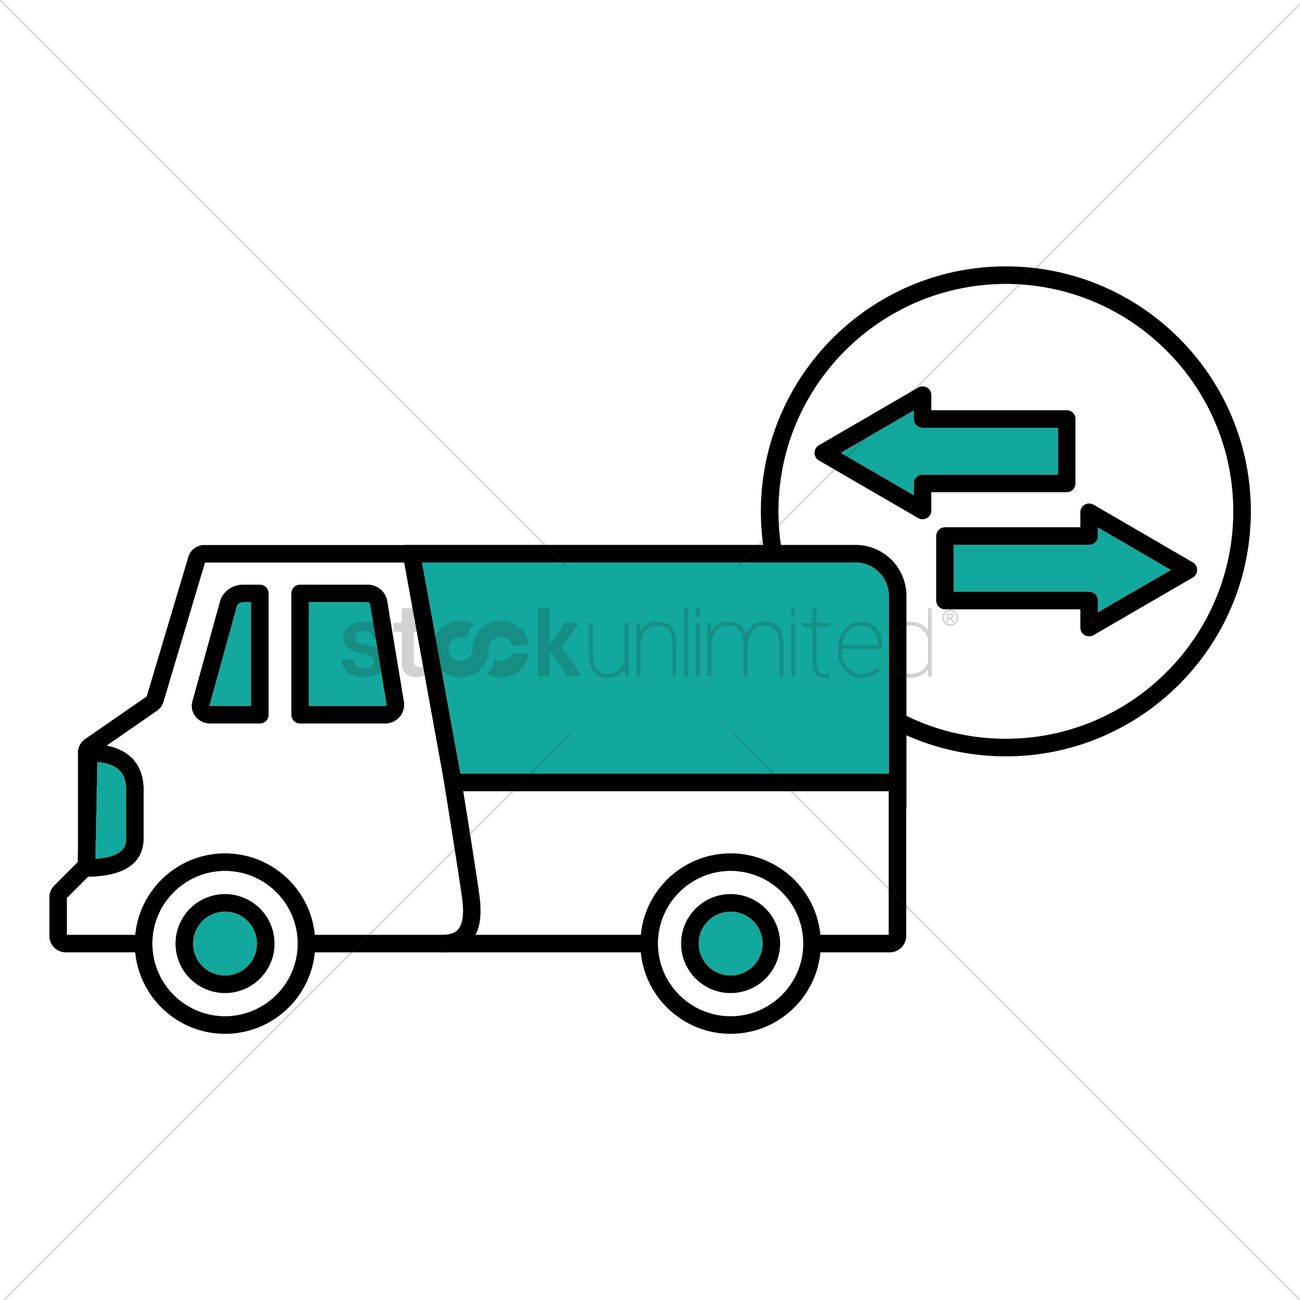 Delivery van Vector Image - 1526677 | StockUnlimited